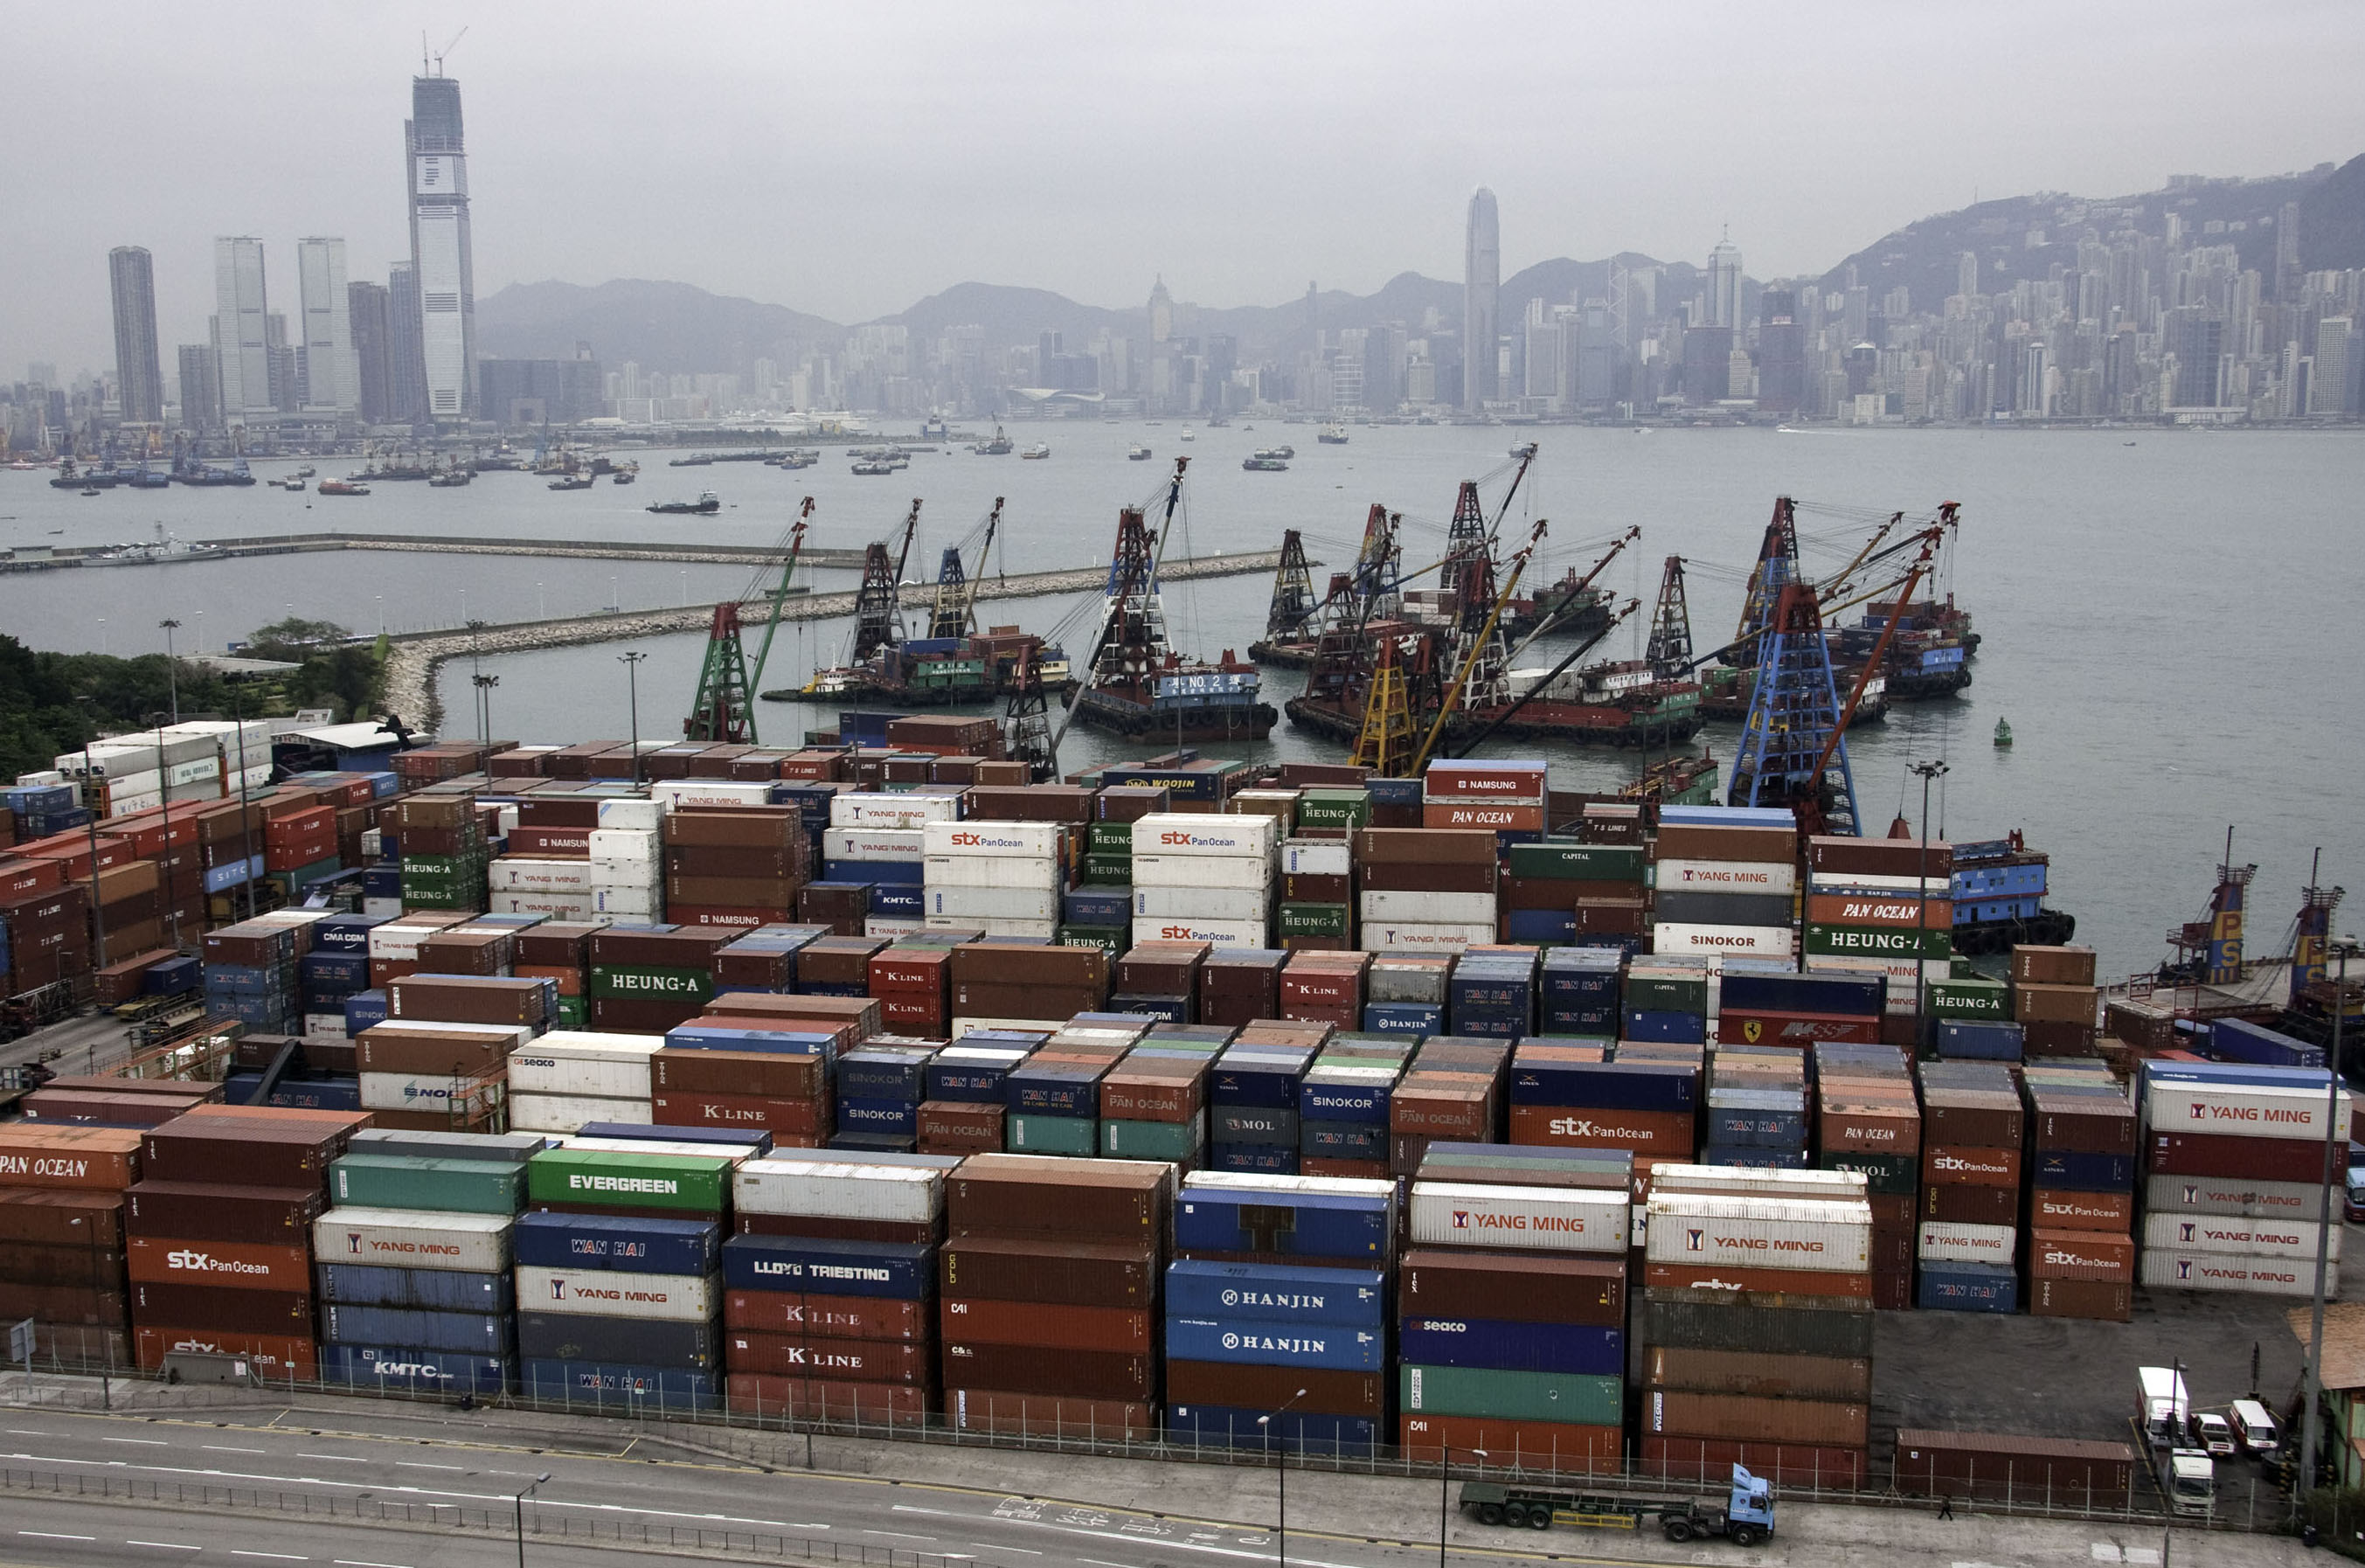 Emerging Markets To Spur HK 2013 Exports Business China Daily Asia